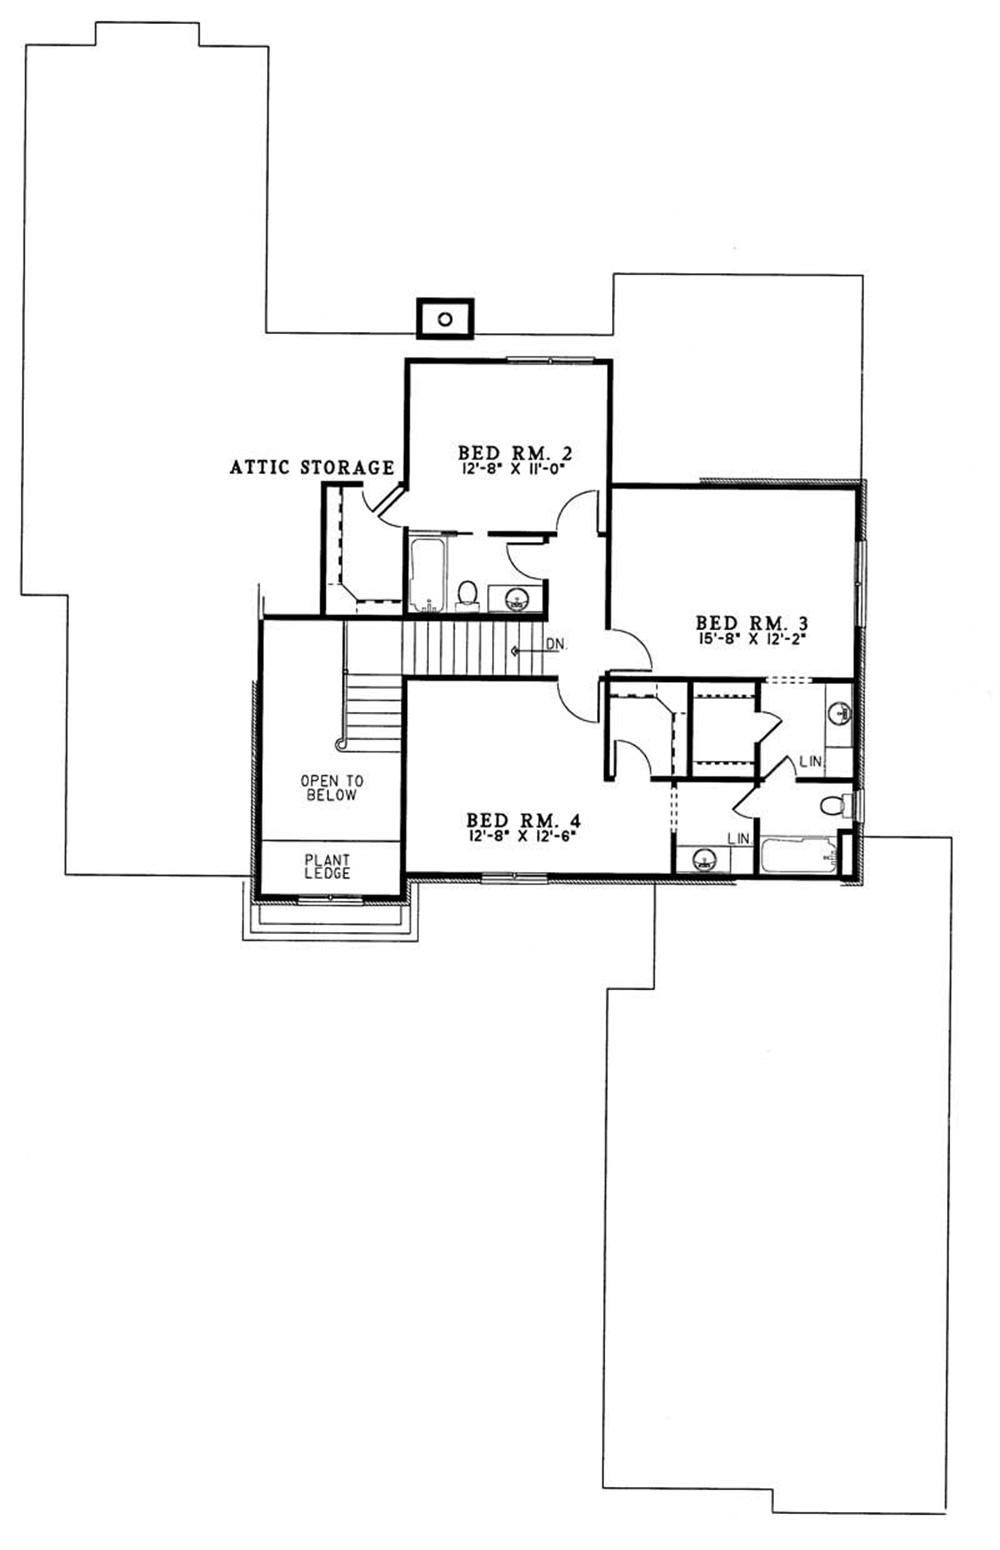 Second story house plans 28 images second story floor for 2nd story addition plans